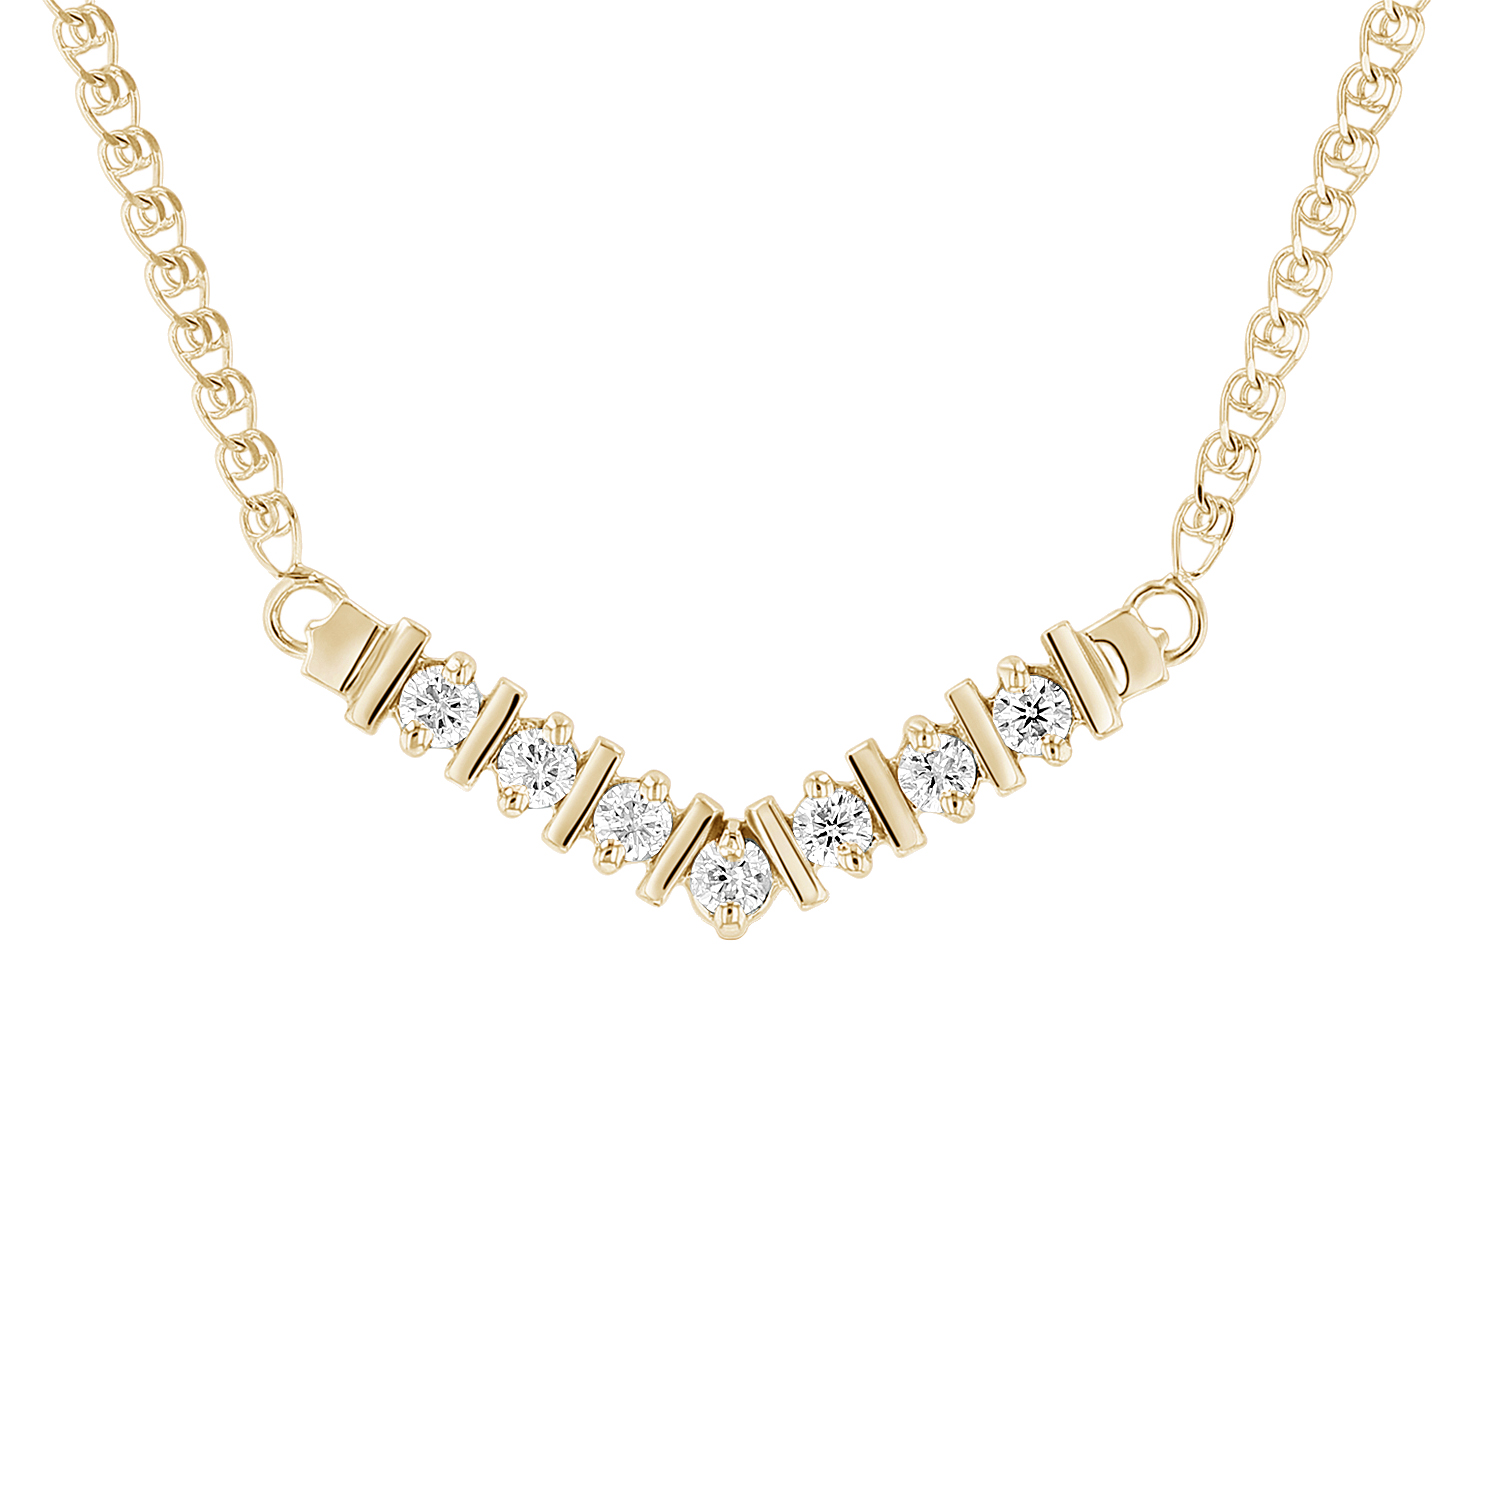 View 1/4ctw Diamond Necklace in 14k Yellow Gold